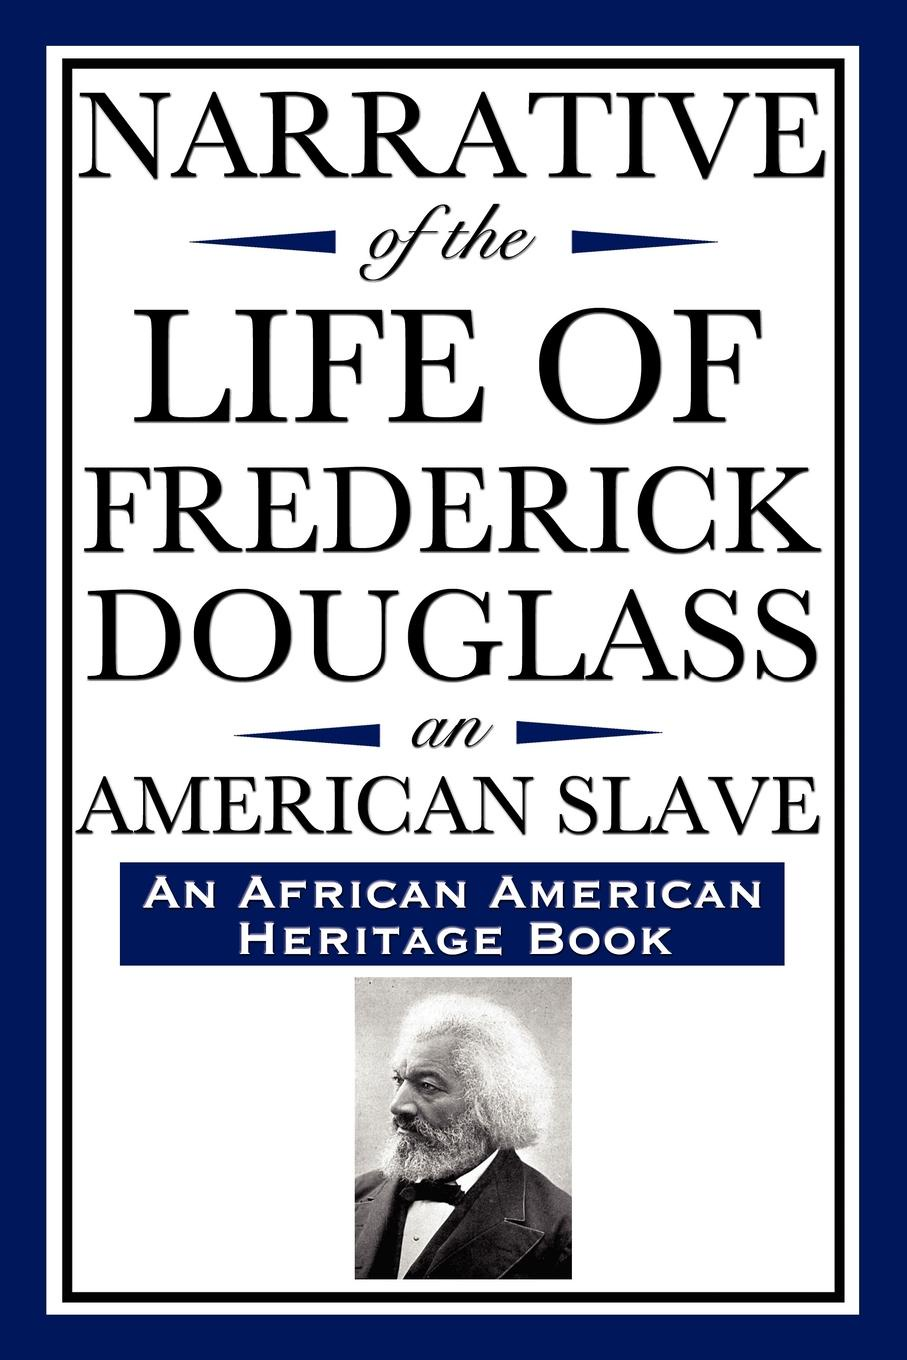 Frederick Douglass Narrative of the Life of Frederick Douglass, an American Slave. Written by Himself (an African American Heritage Book) ephraim douglass adams the power of ideals in american history